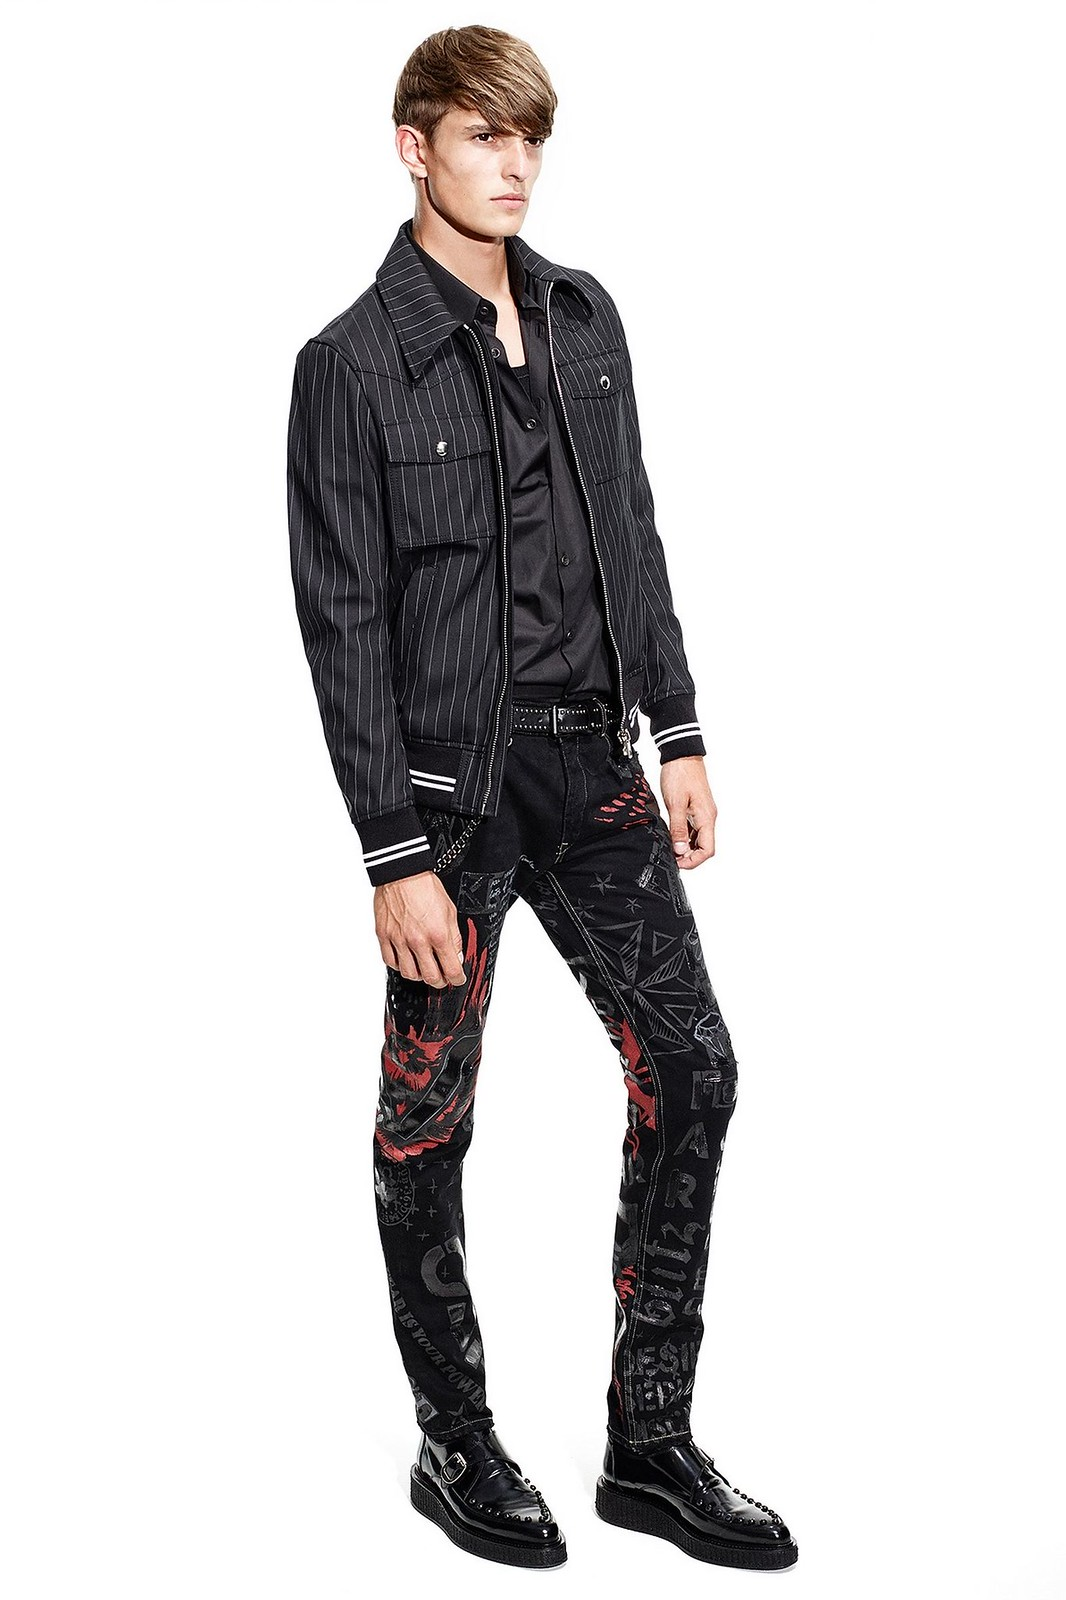 Guerrino Santulliana0011_AW14 DIESEL BLACK GOLD